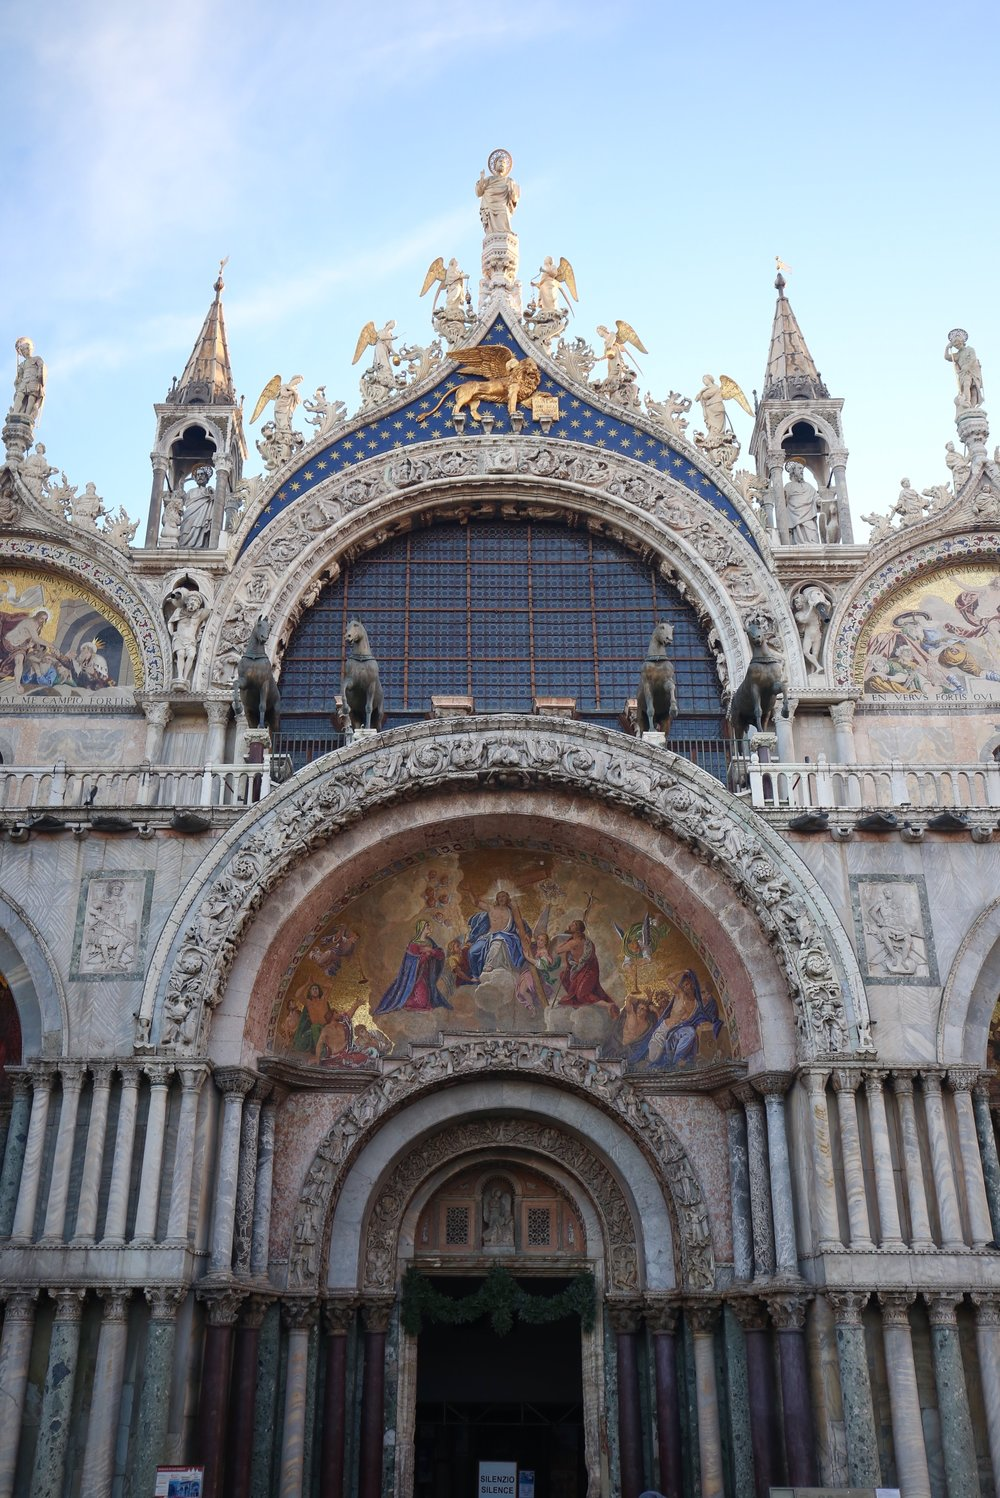 The façade of St Mark's Basilica - all rose and gold and lions and stars.